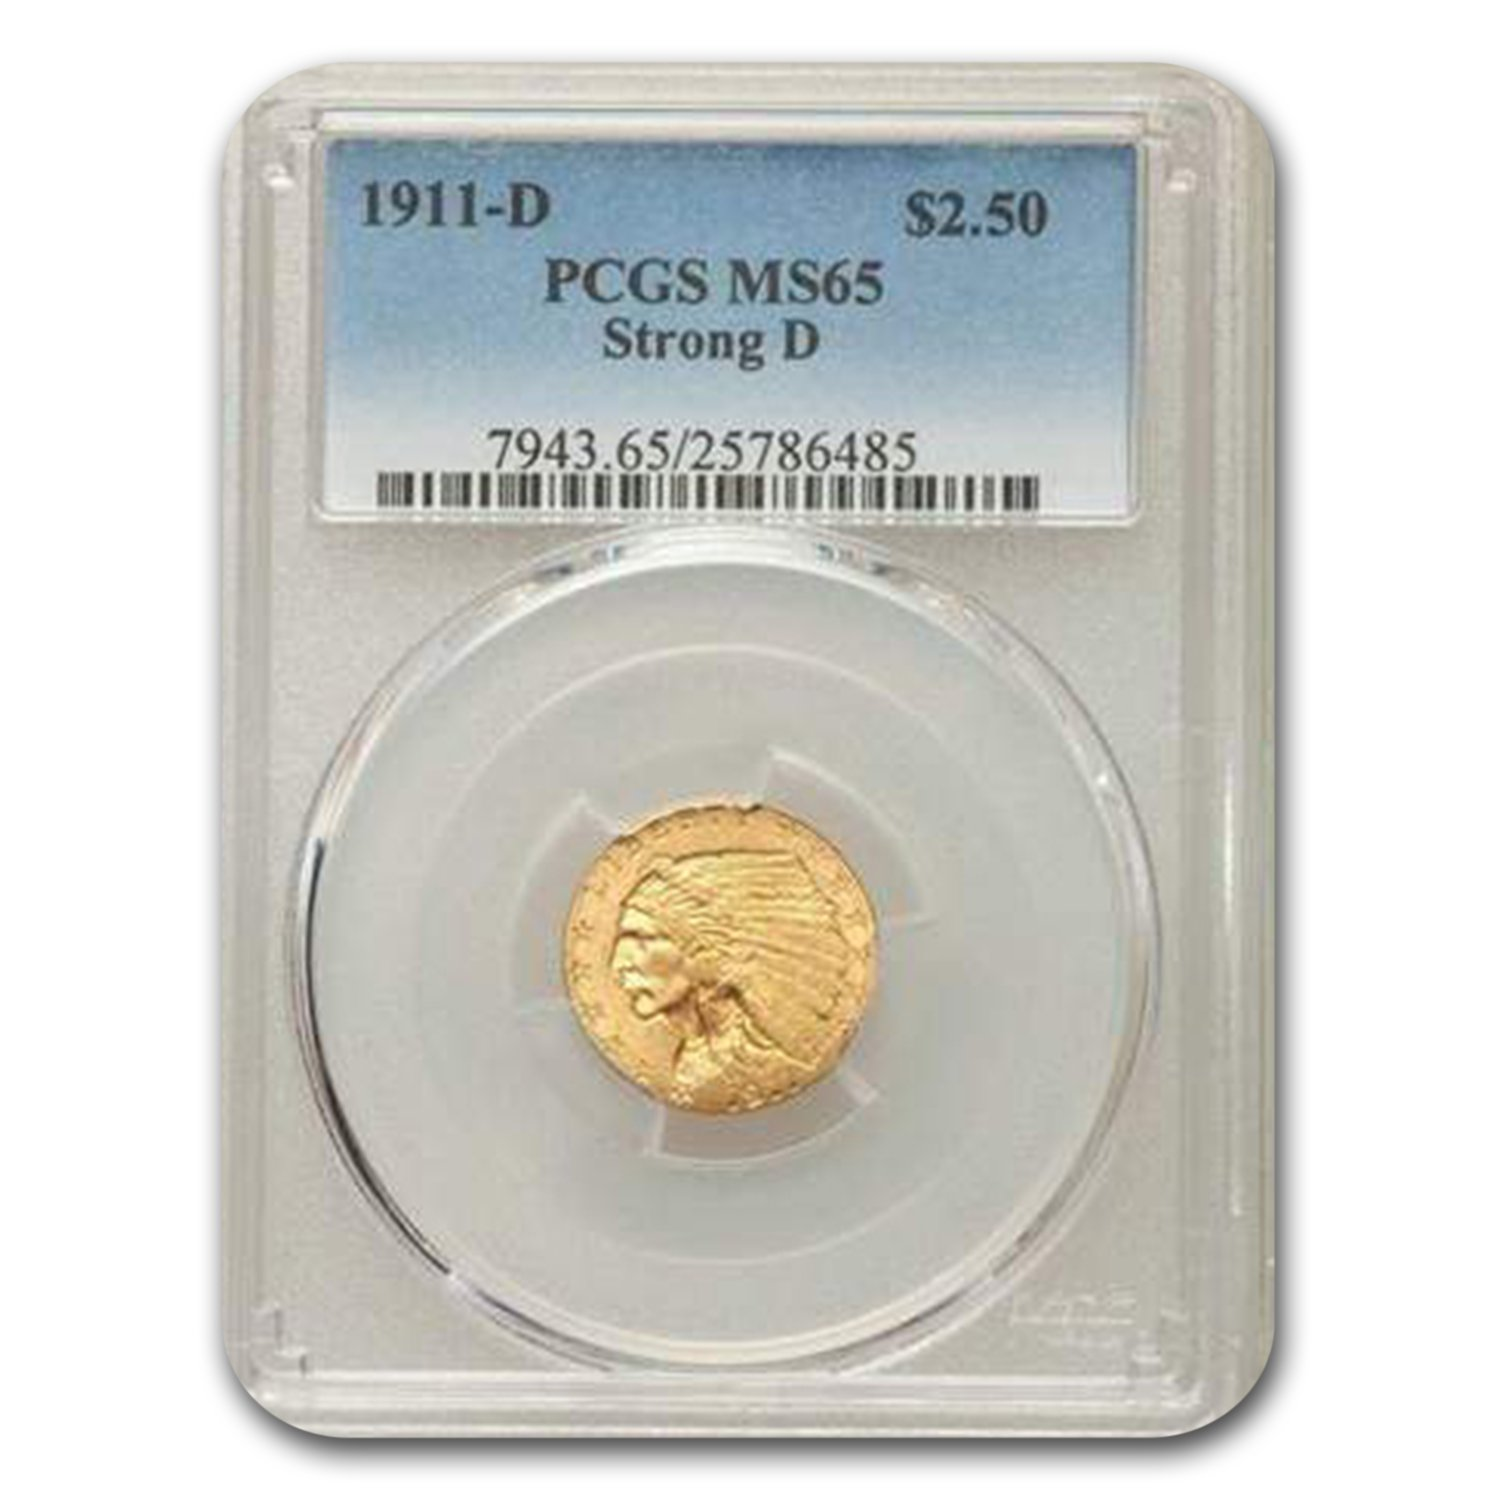 1911-D $2.50 Indian Gold Quarter Eagle MS-65 PCGS (Strong D)